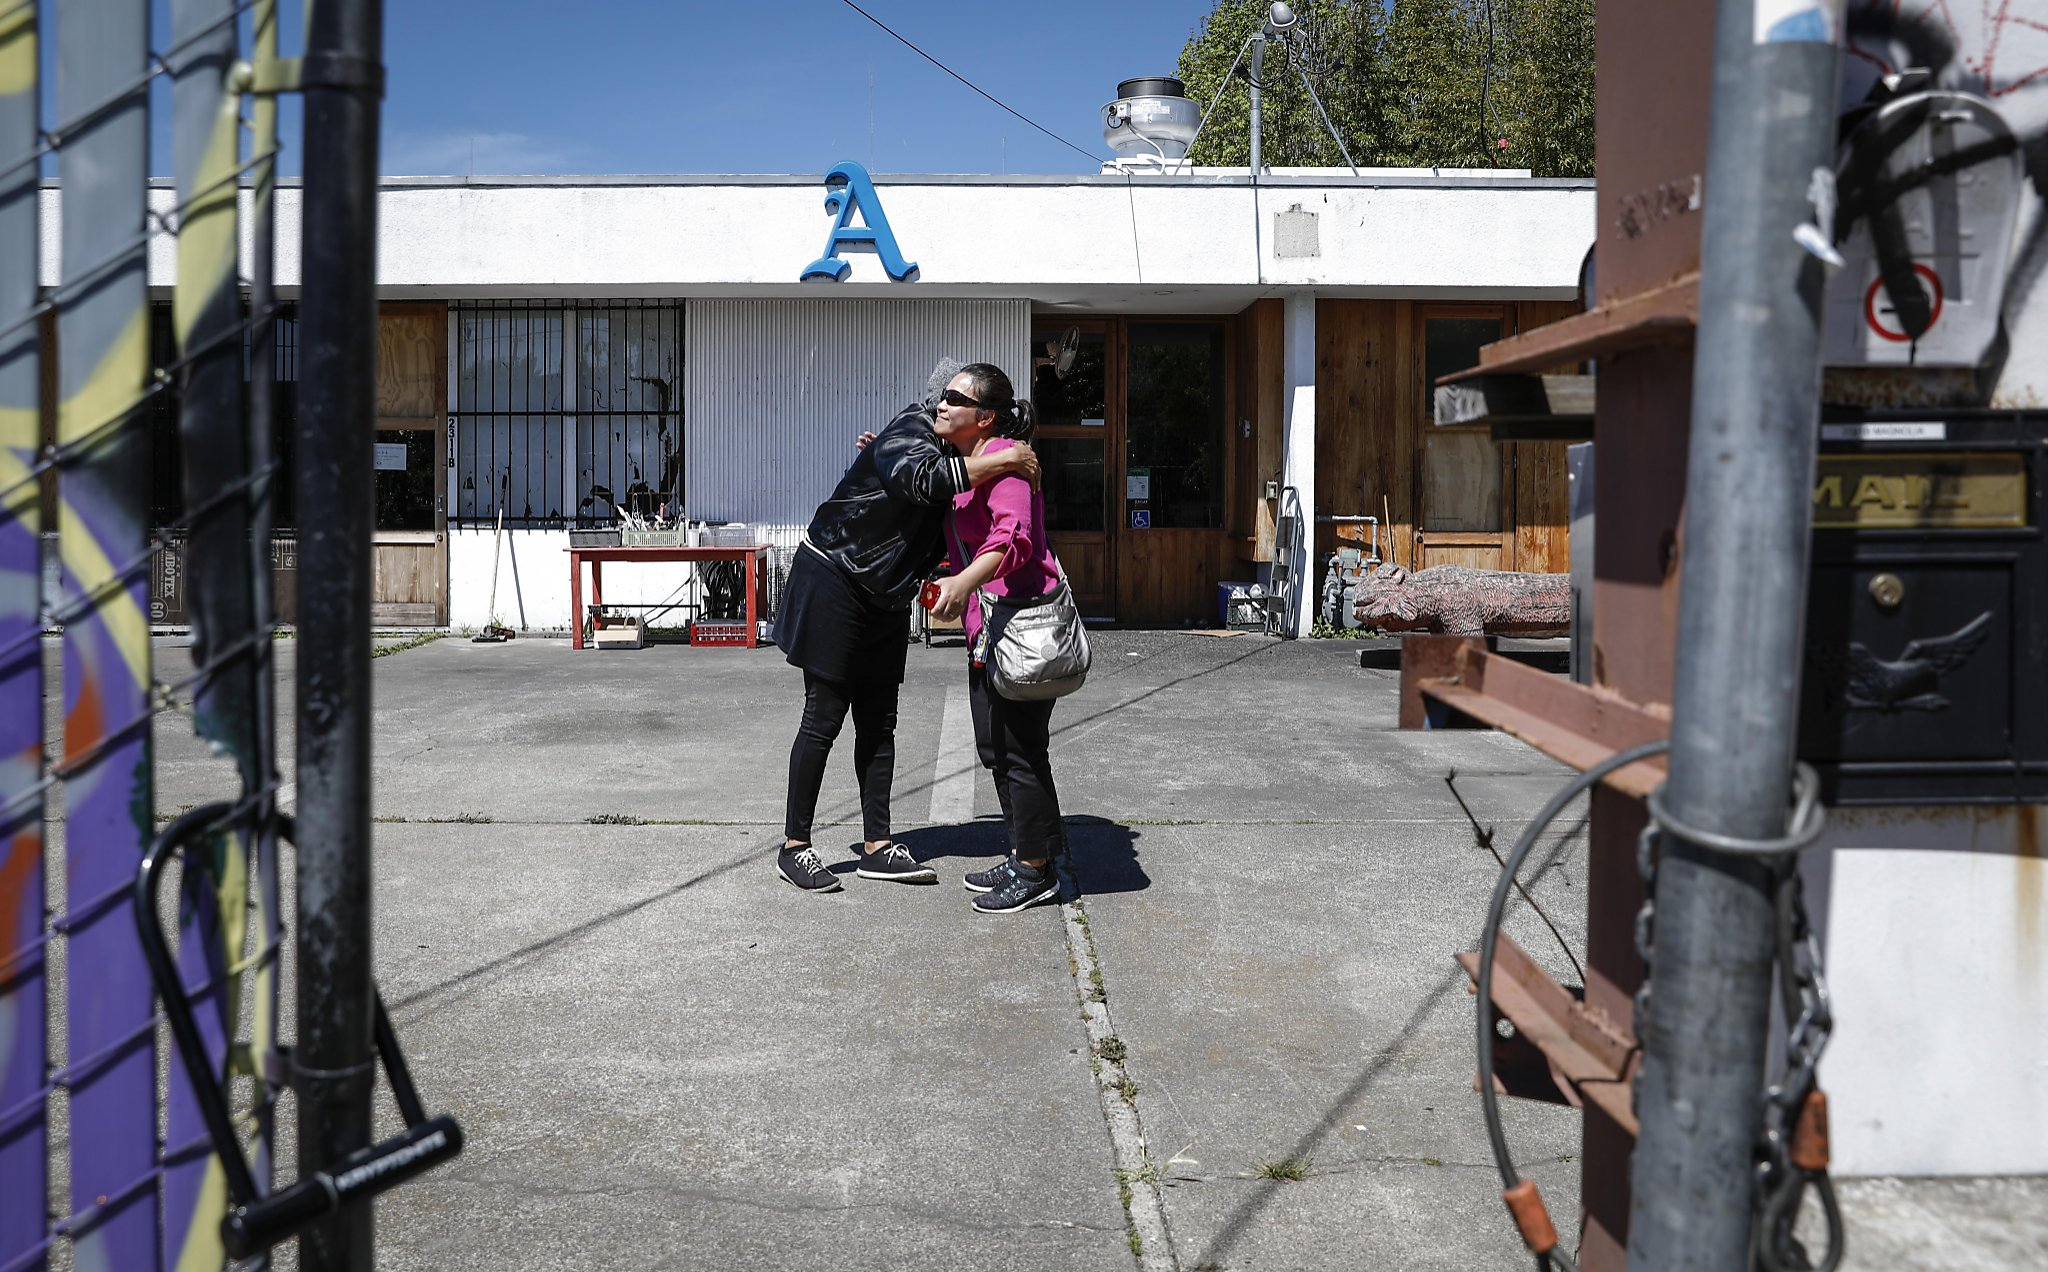 West Oakland's family-run restaurants struggle as climate shifts -  SFChronicle.com